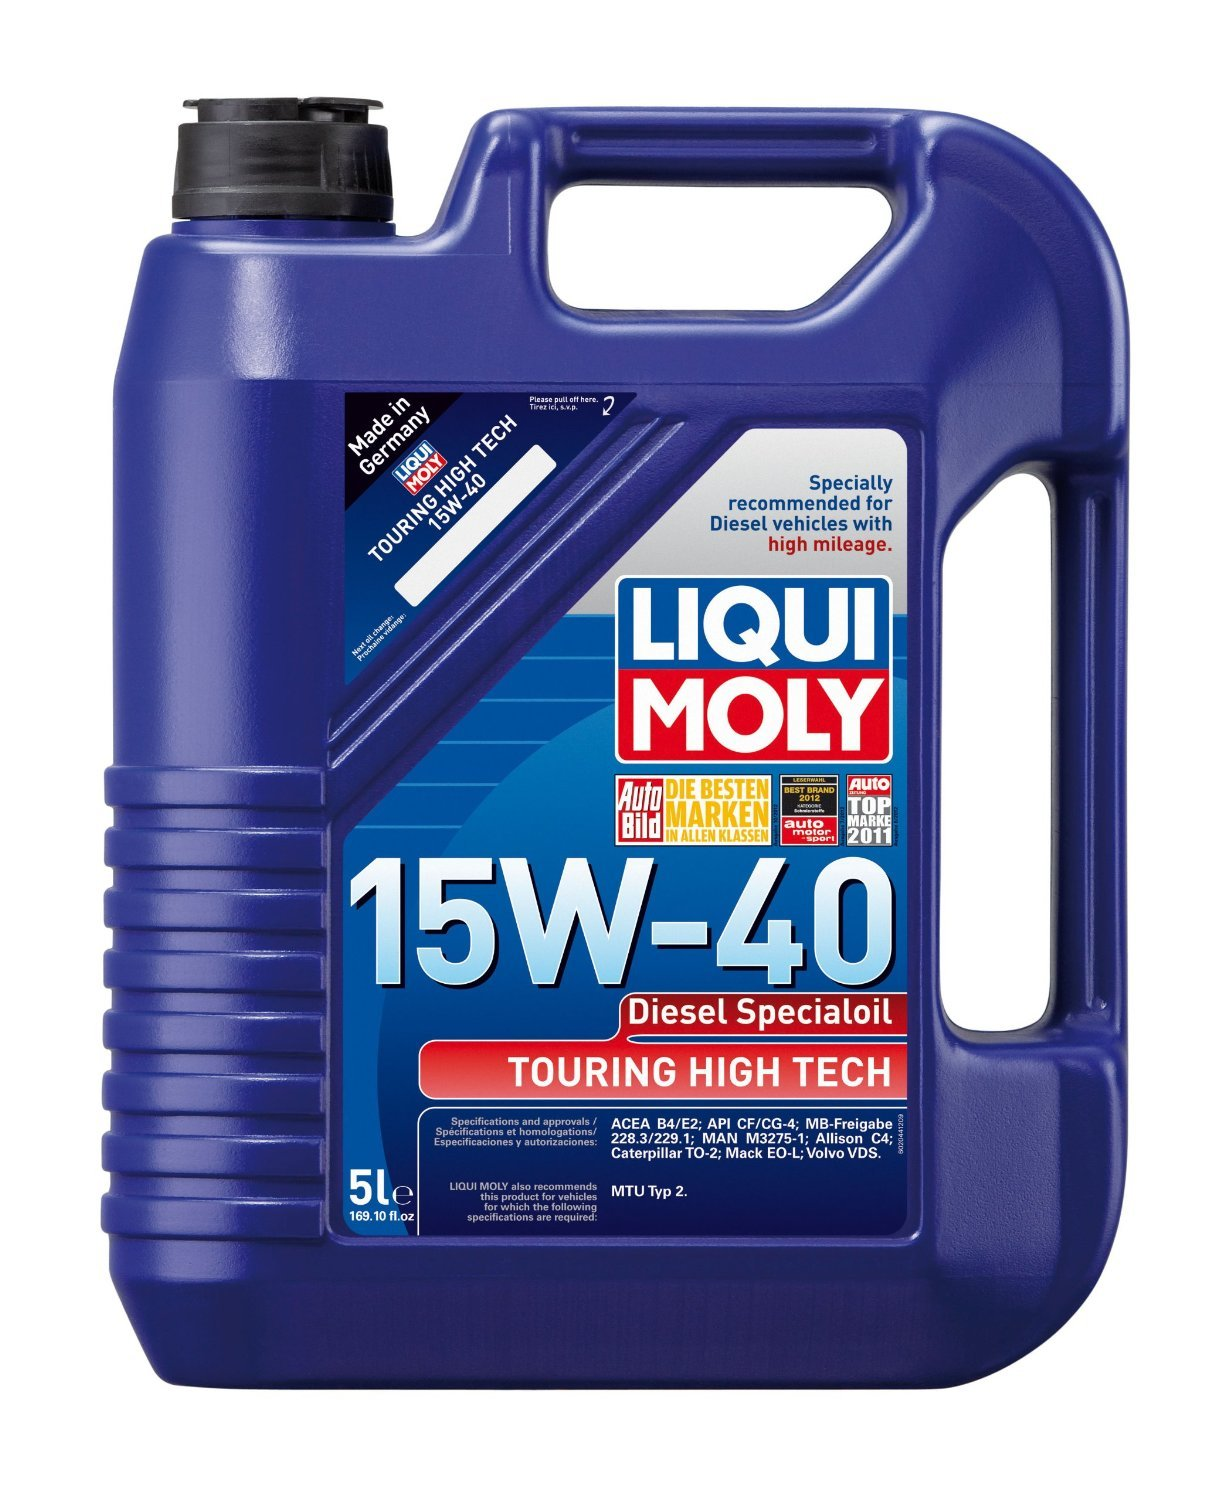 Liqui Moly (2044-4PK) Touring High Tech Diesel 15W-40 Motor Oil - 5 Liter, (Pack of 4) by Liqui Moly